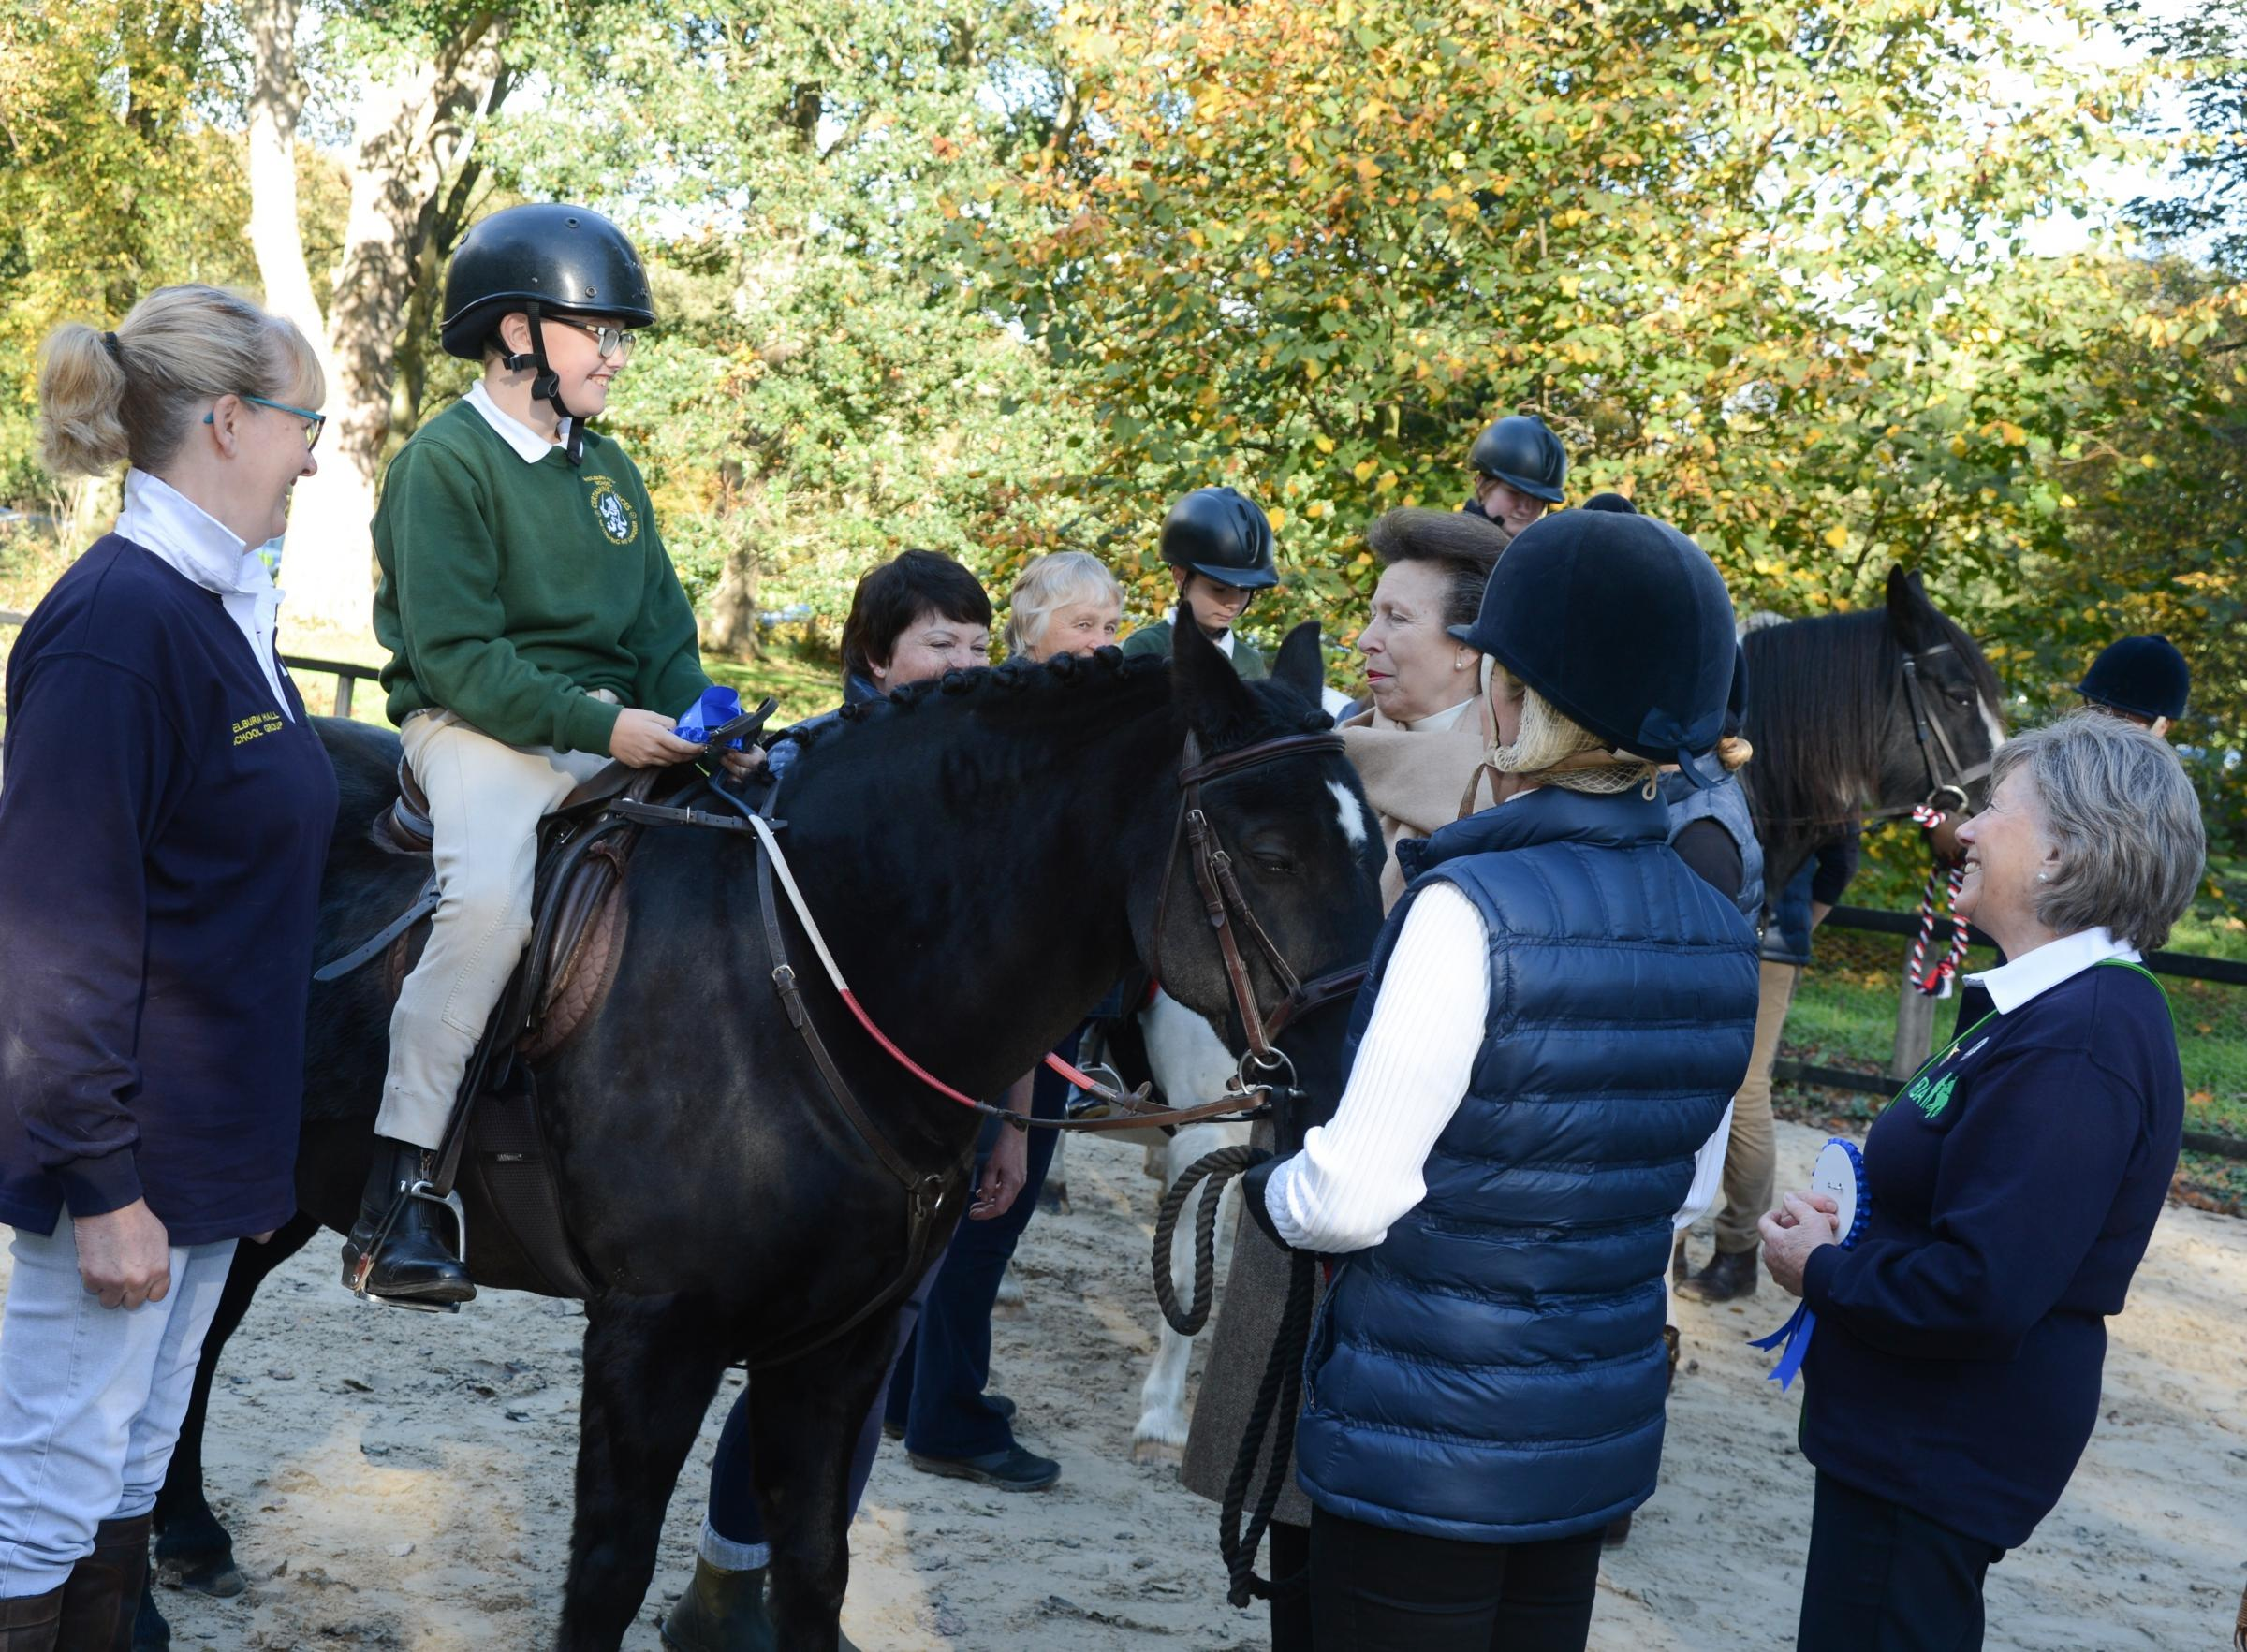 Princess Anne presenting a rosette to Daniel Price riding Dennis during her visit last weekendPicture: Welburn Hall School Riding Group